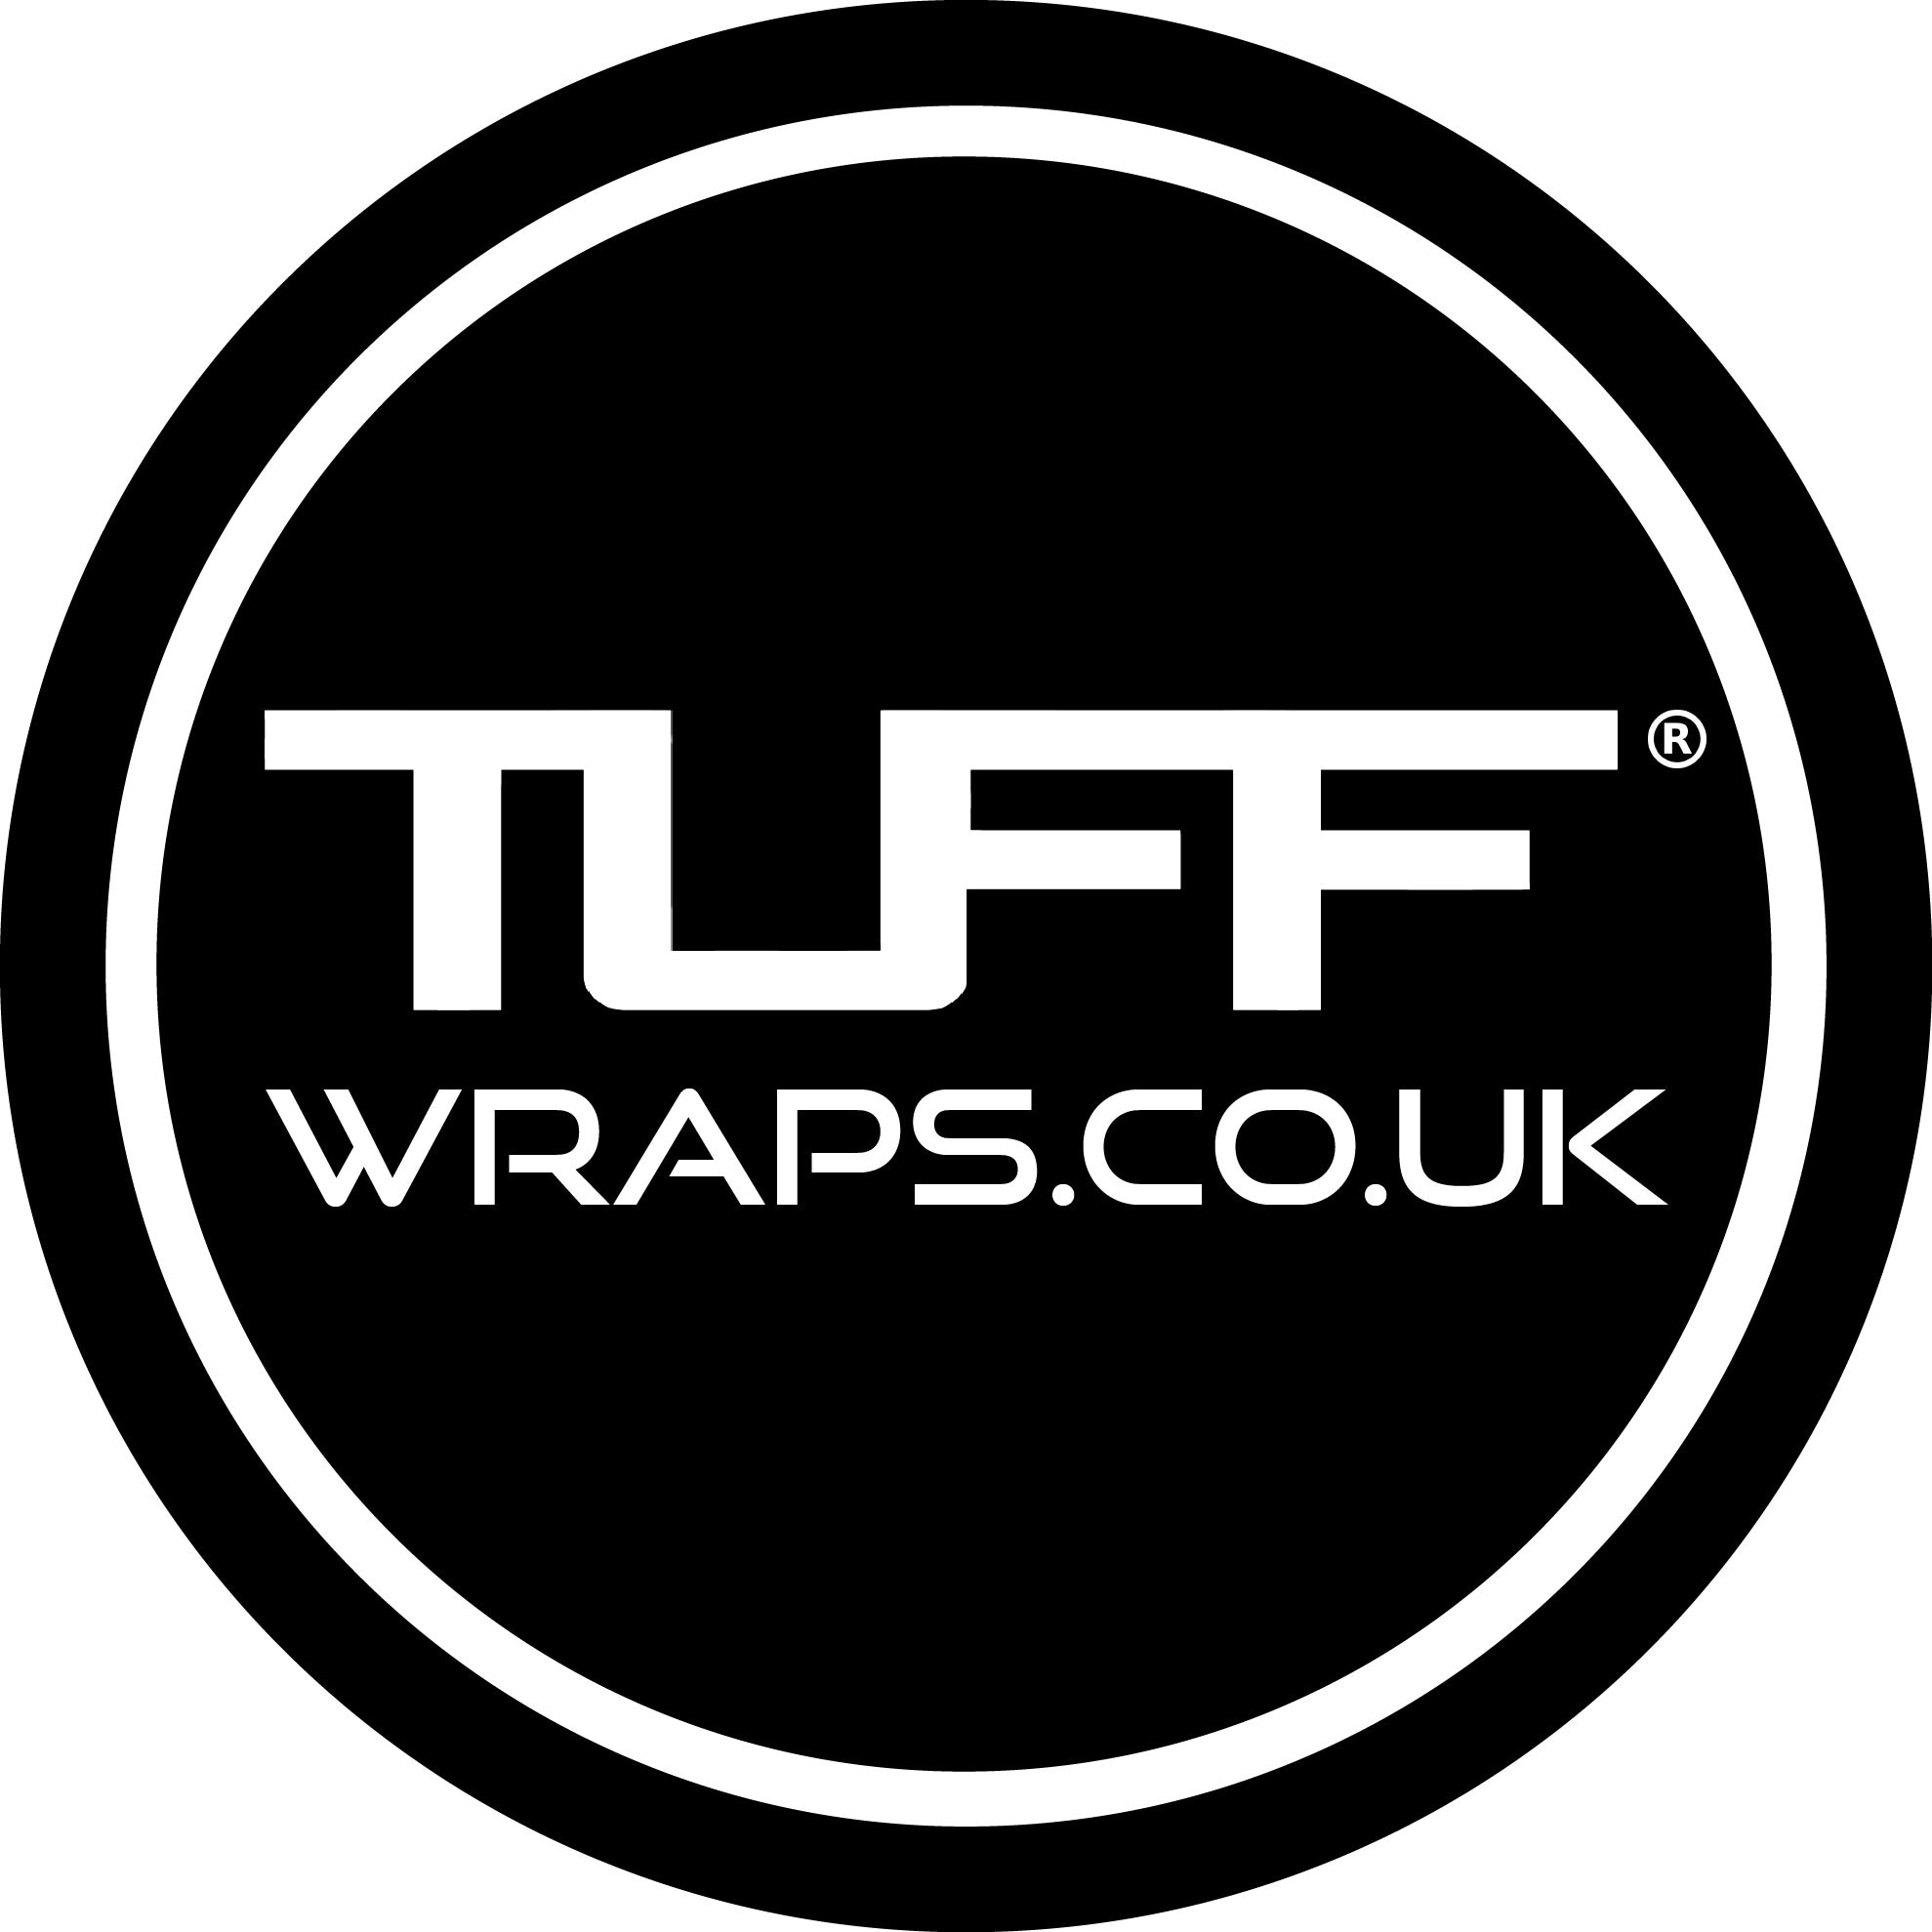 TuffWraps UK